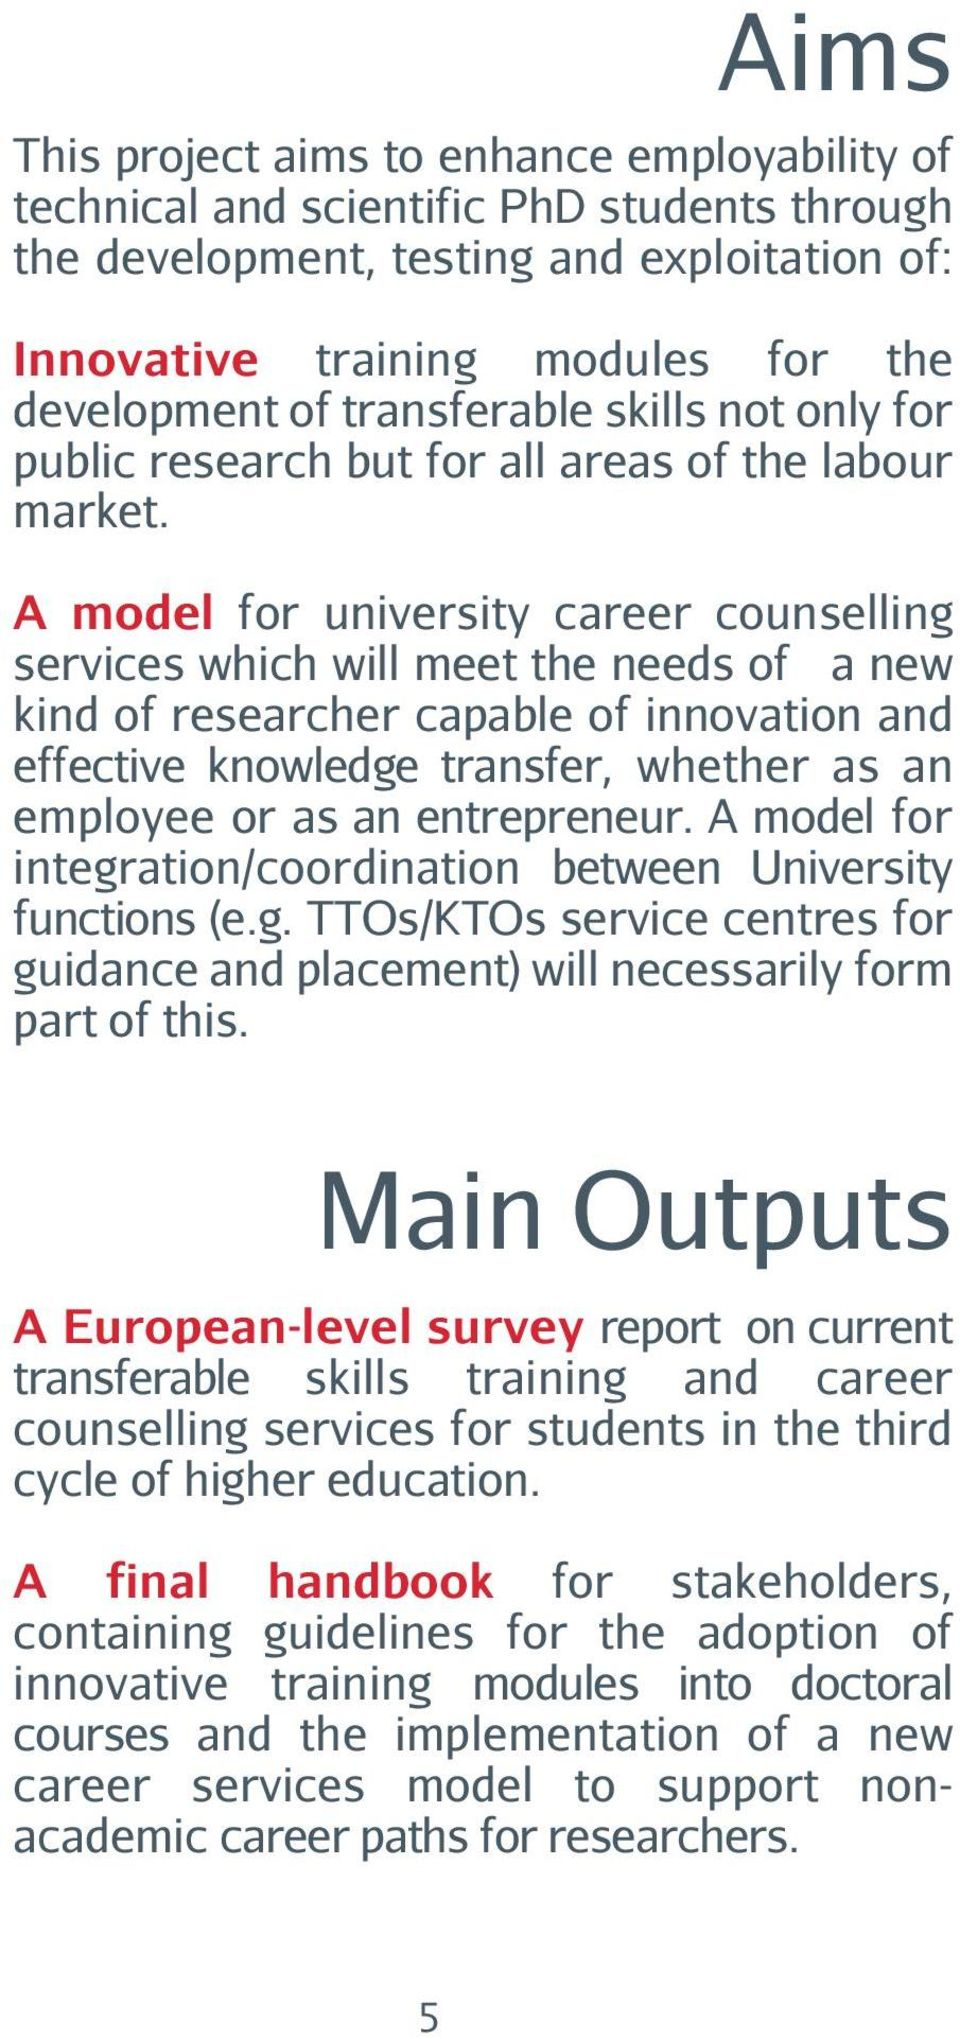 A model for university career counselling services which will meet the needs of a new kind of researcher capable of innovation and effective knowledge transfer, whether as an employee or as an